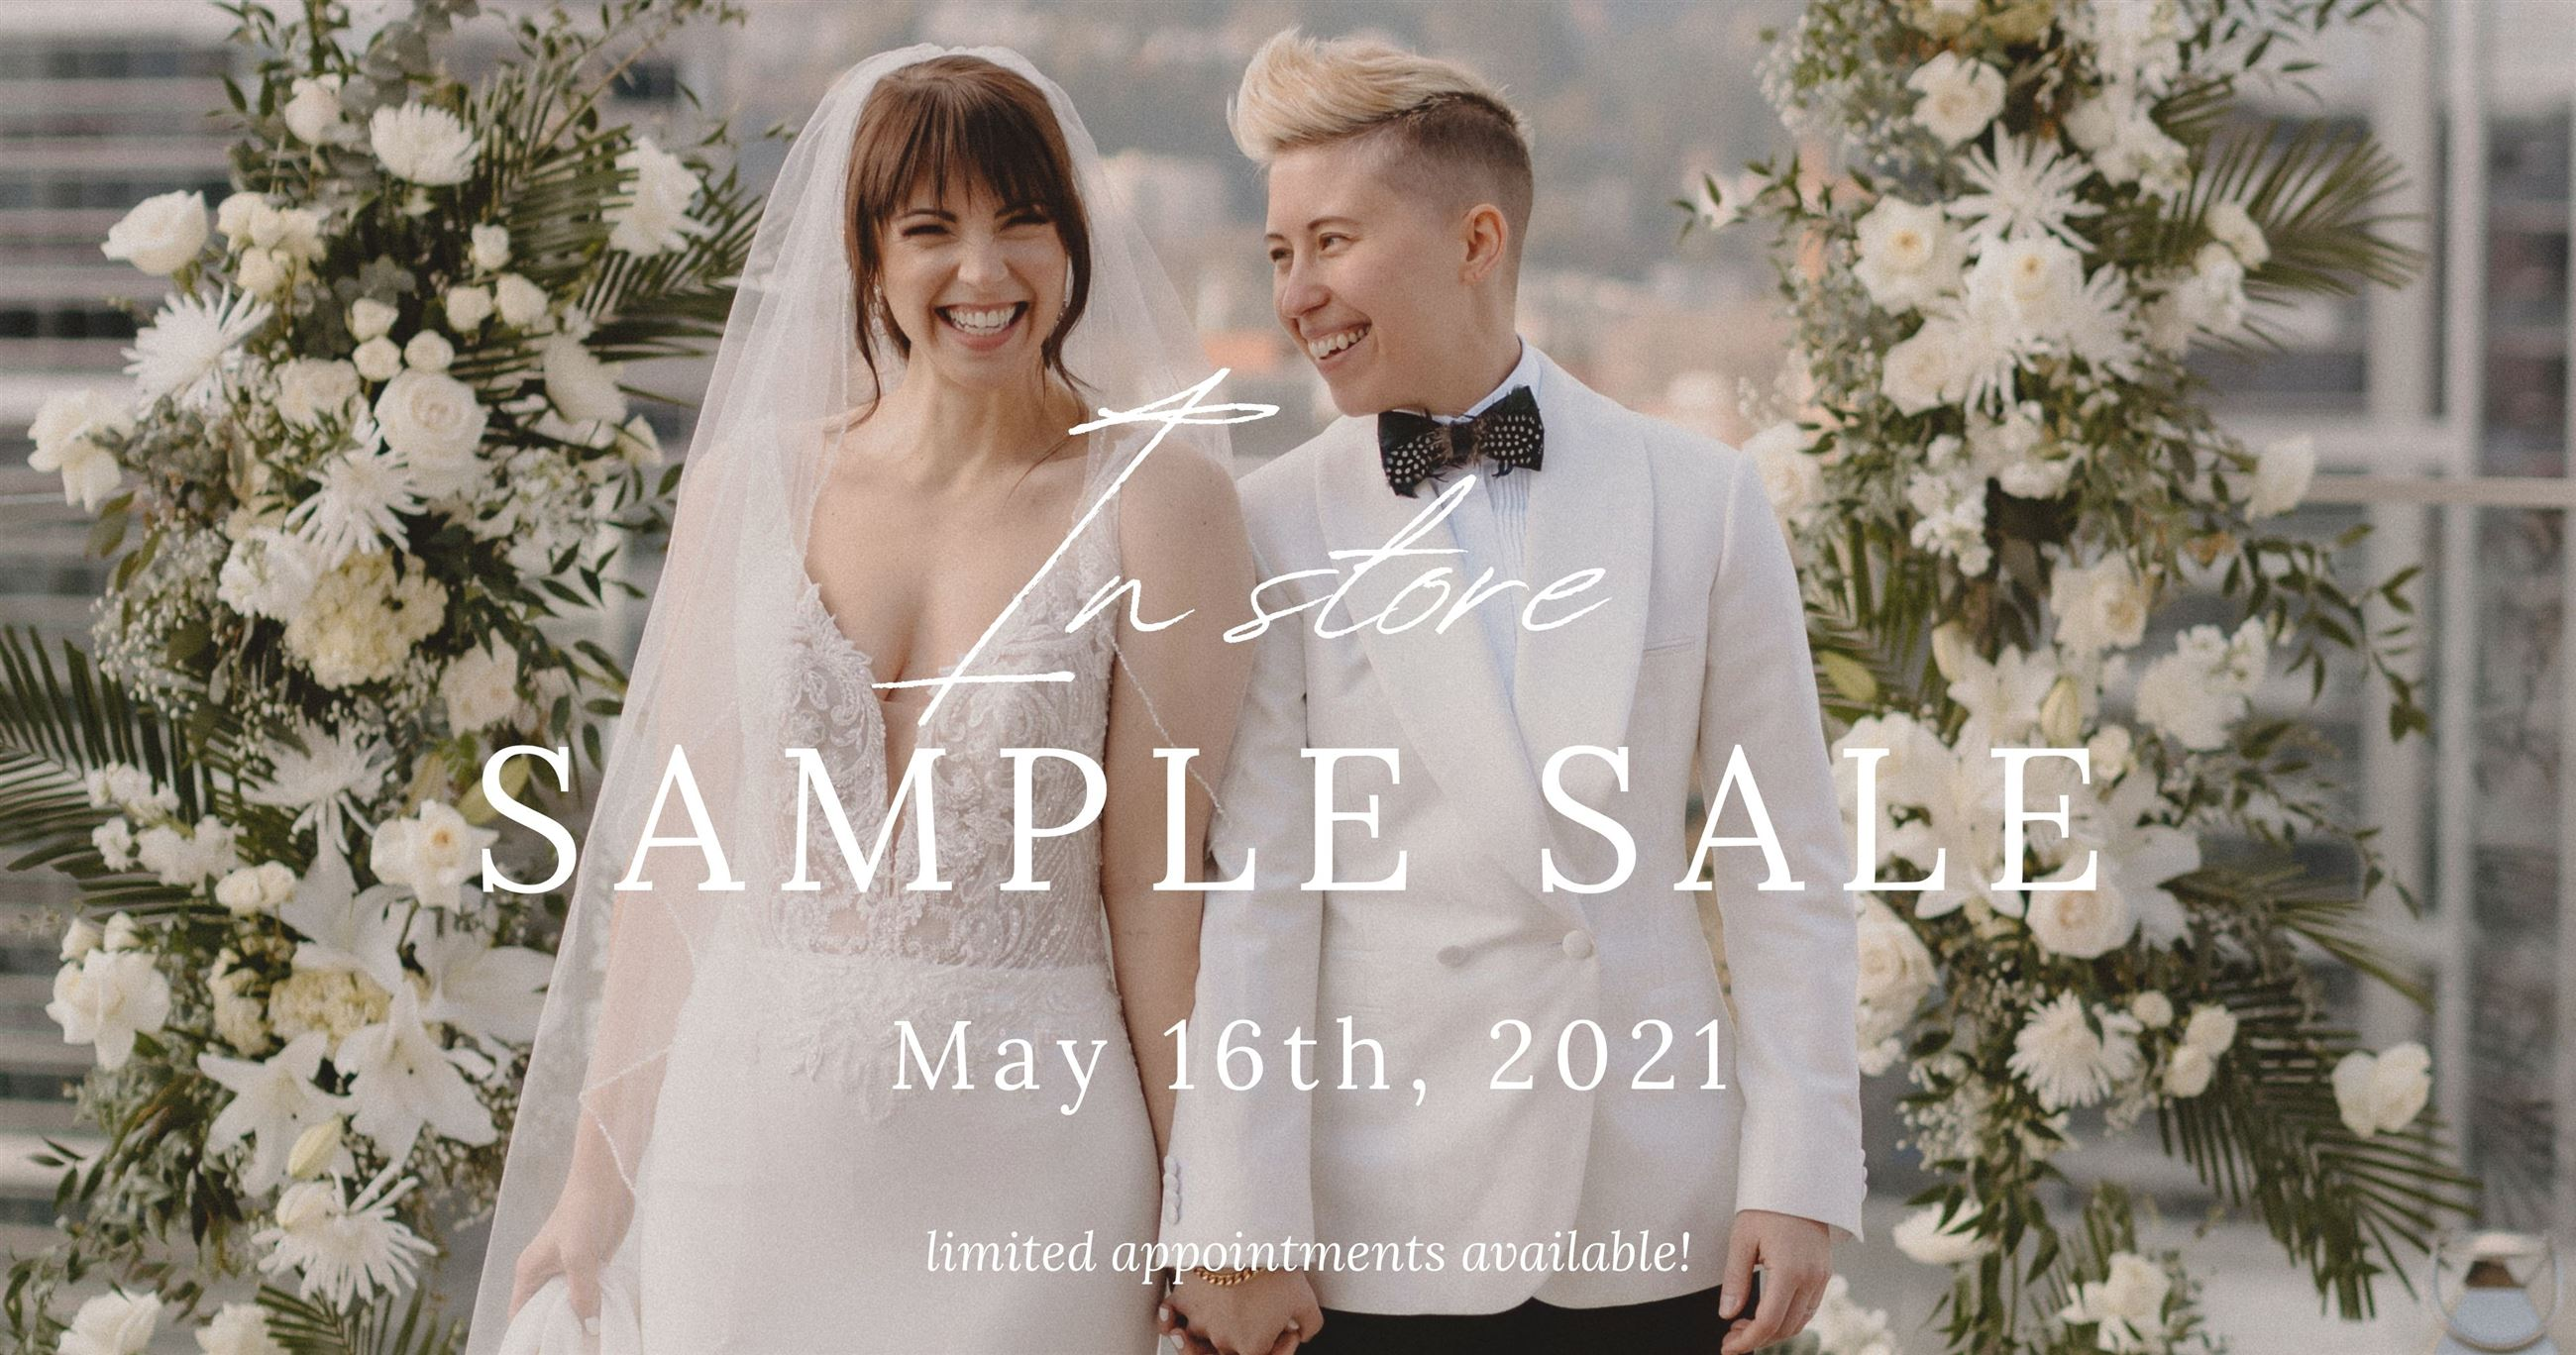 In Store Sample Sale May 16th 2021 at Charlotte's Weddings in Portland, Oregon